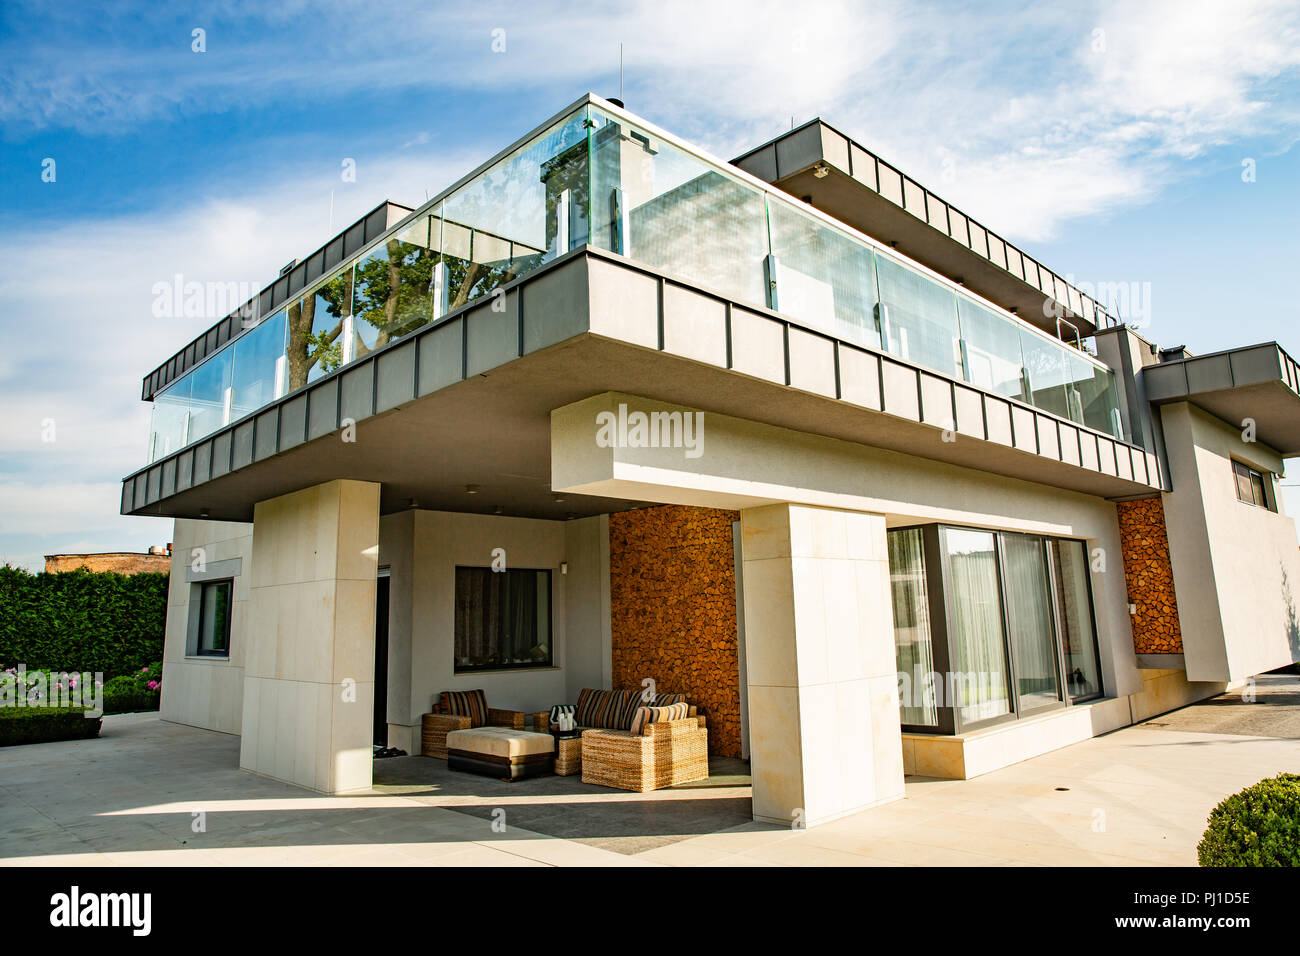 Big Modern Beautiful House Lofty Sunny Day Stock Photo 217620522